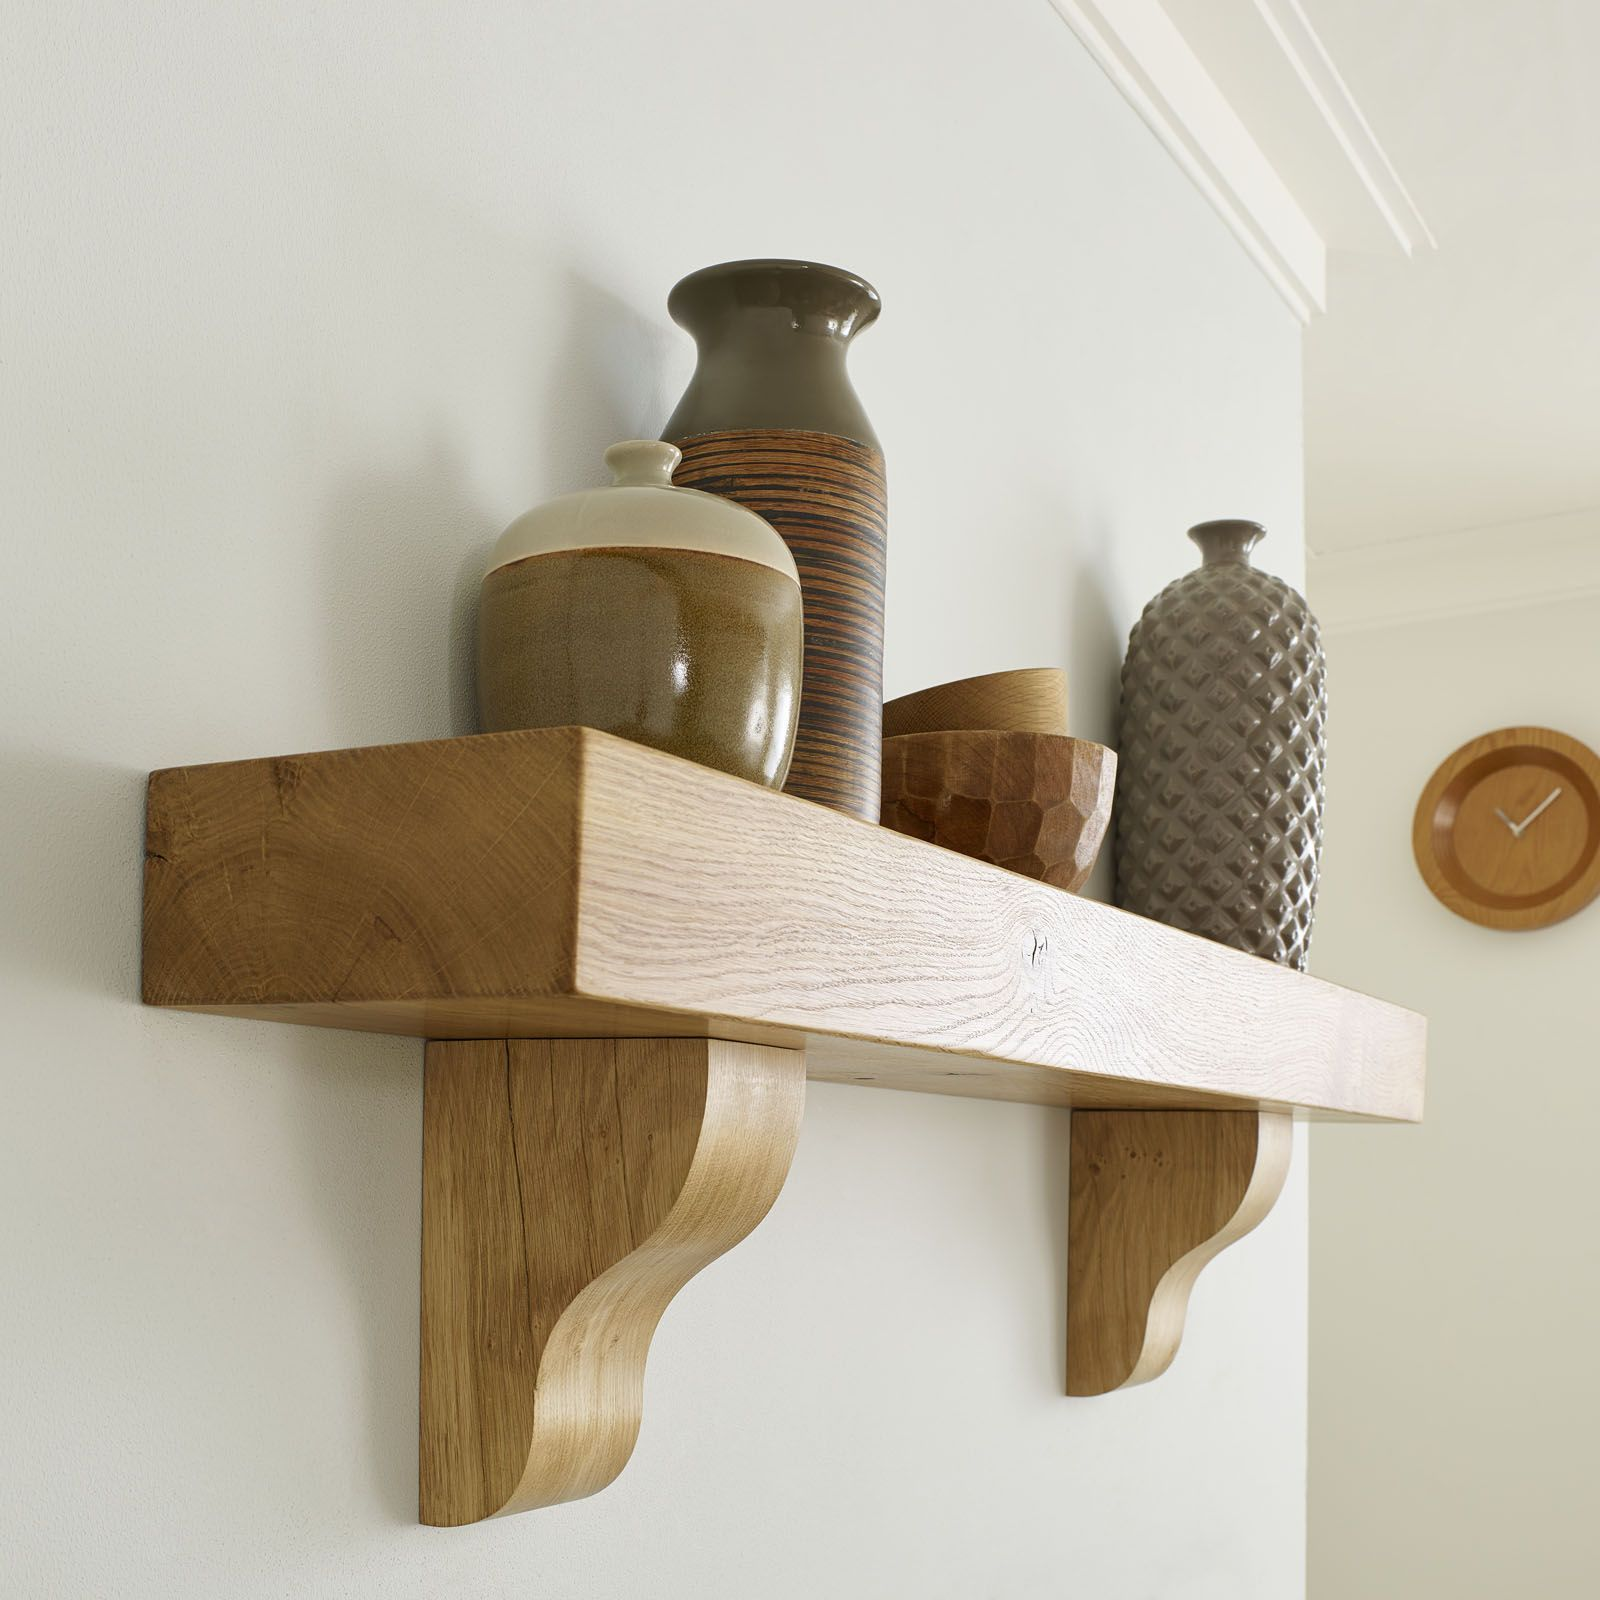 Oak Corbel Bracket Shelf Solid European Character Beam